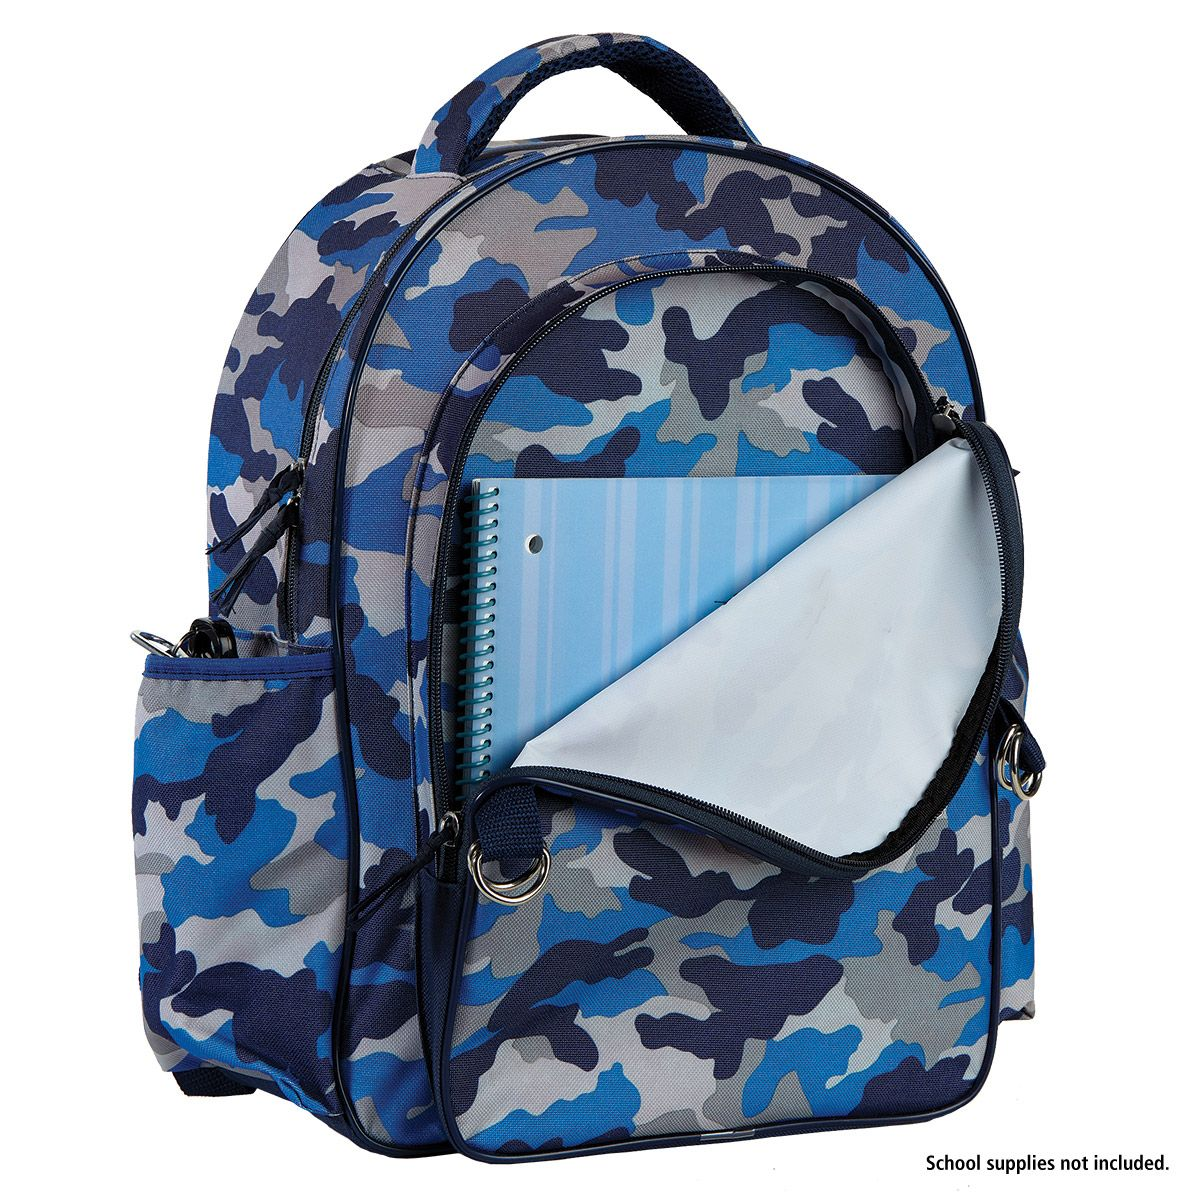 Blue Camo Backpack with Attached Personalized Lunch Bag